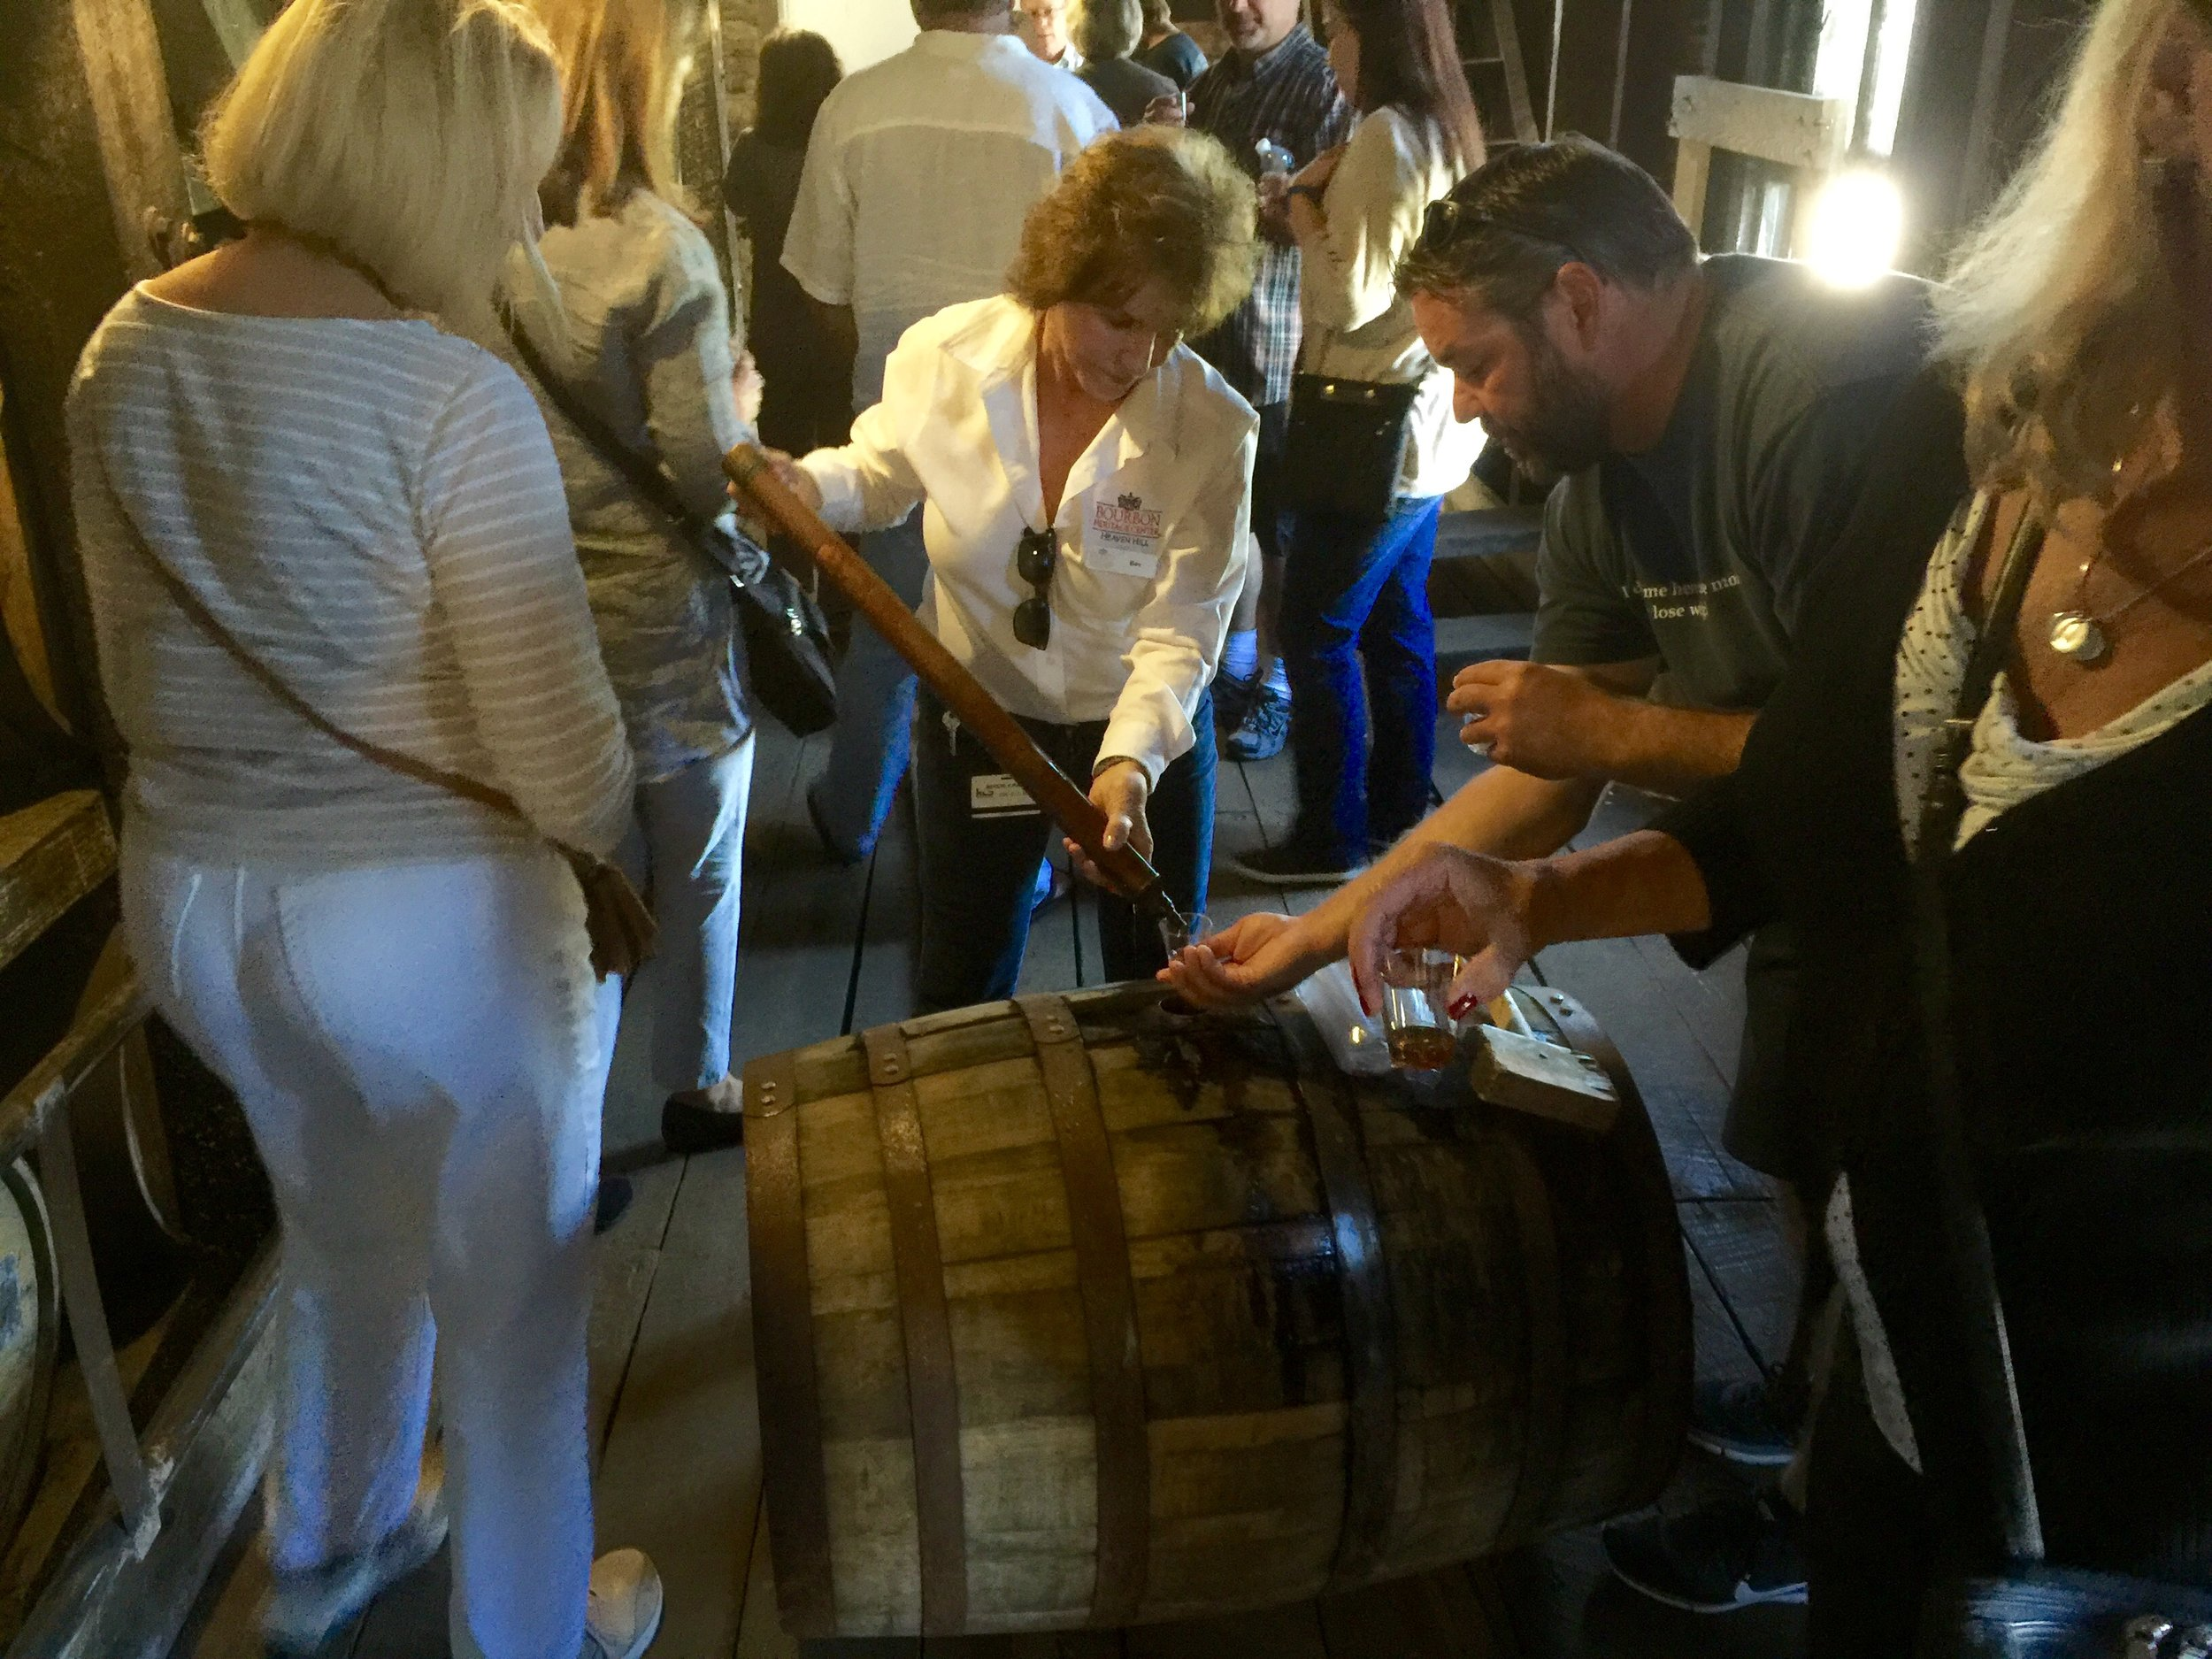 Tasting straight uncut (140+ proof) 10-year-old Bourbon straight out of the barrel at Heaven Hill.